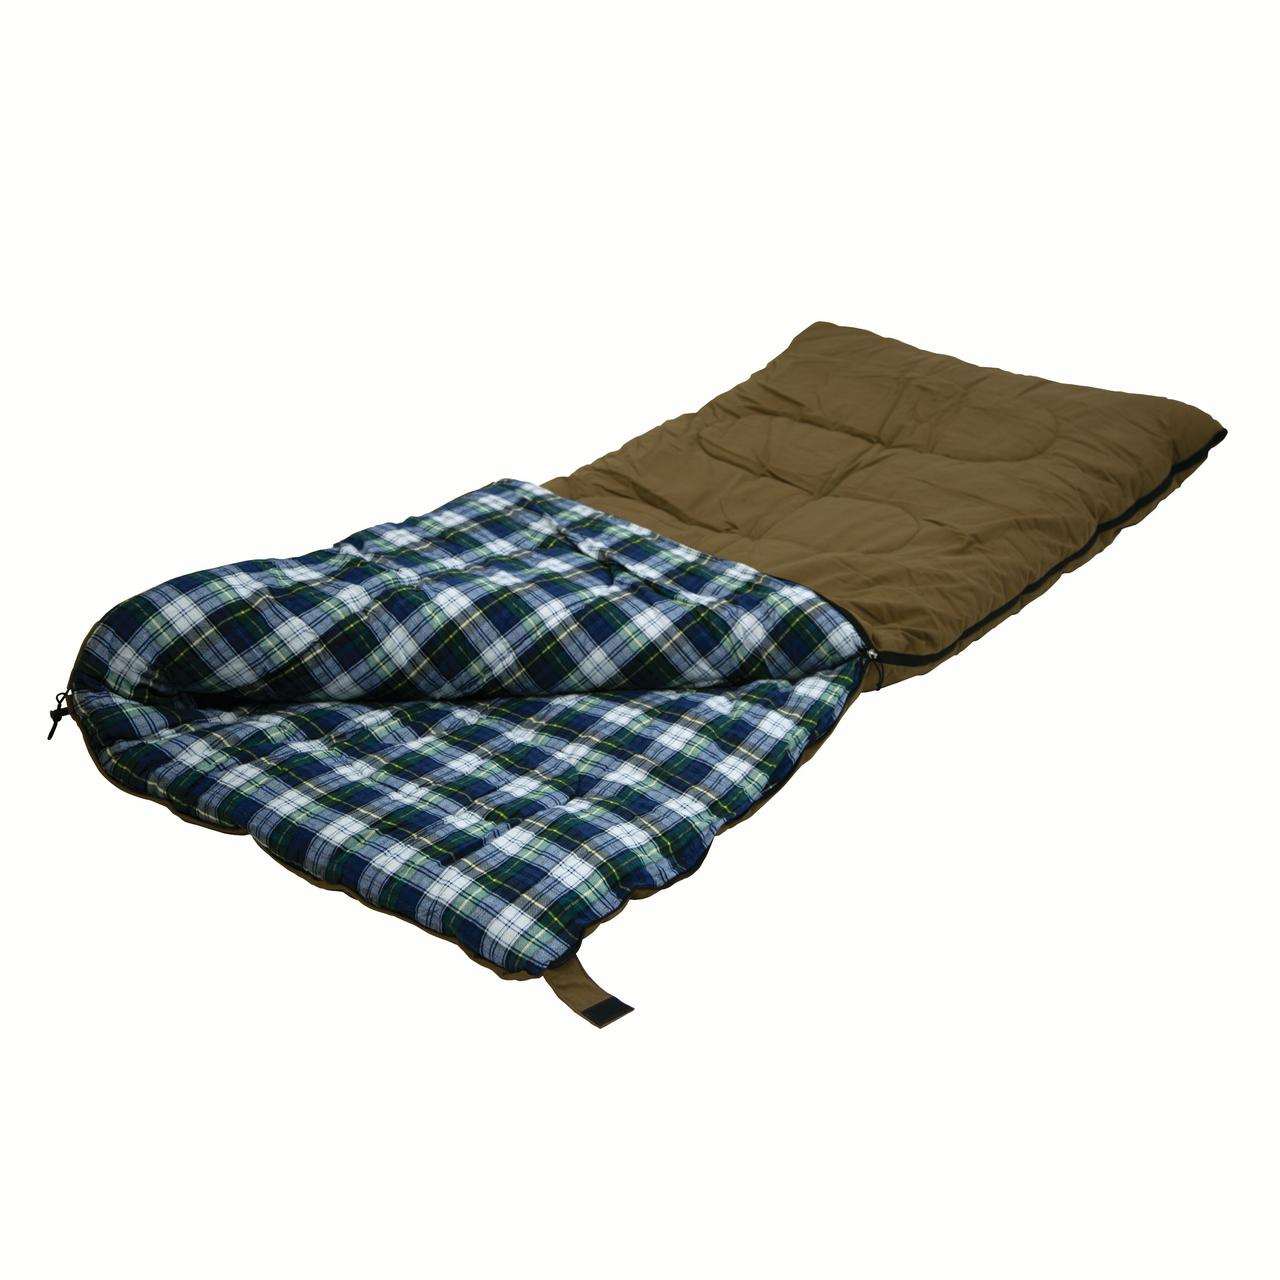 """Stansport White Tail 5 lb Rectangular Sleeping Bag 36"""" x 78"""" by Stansport"""